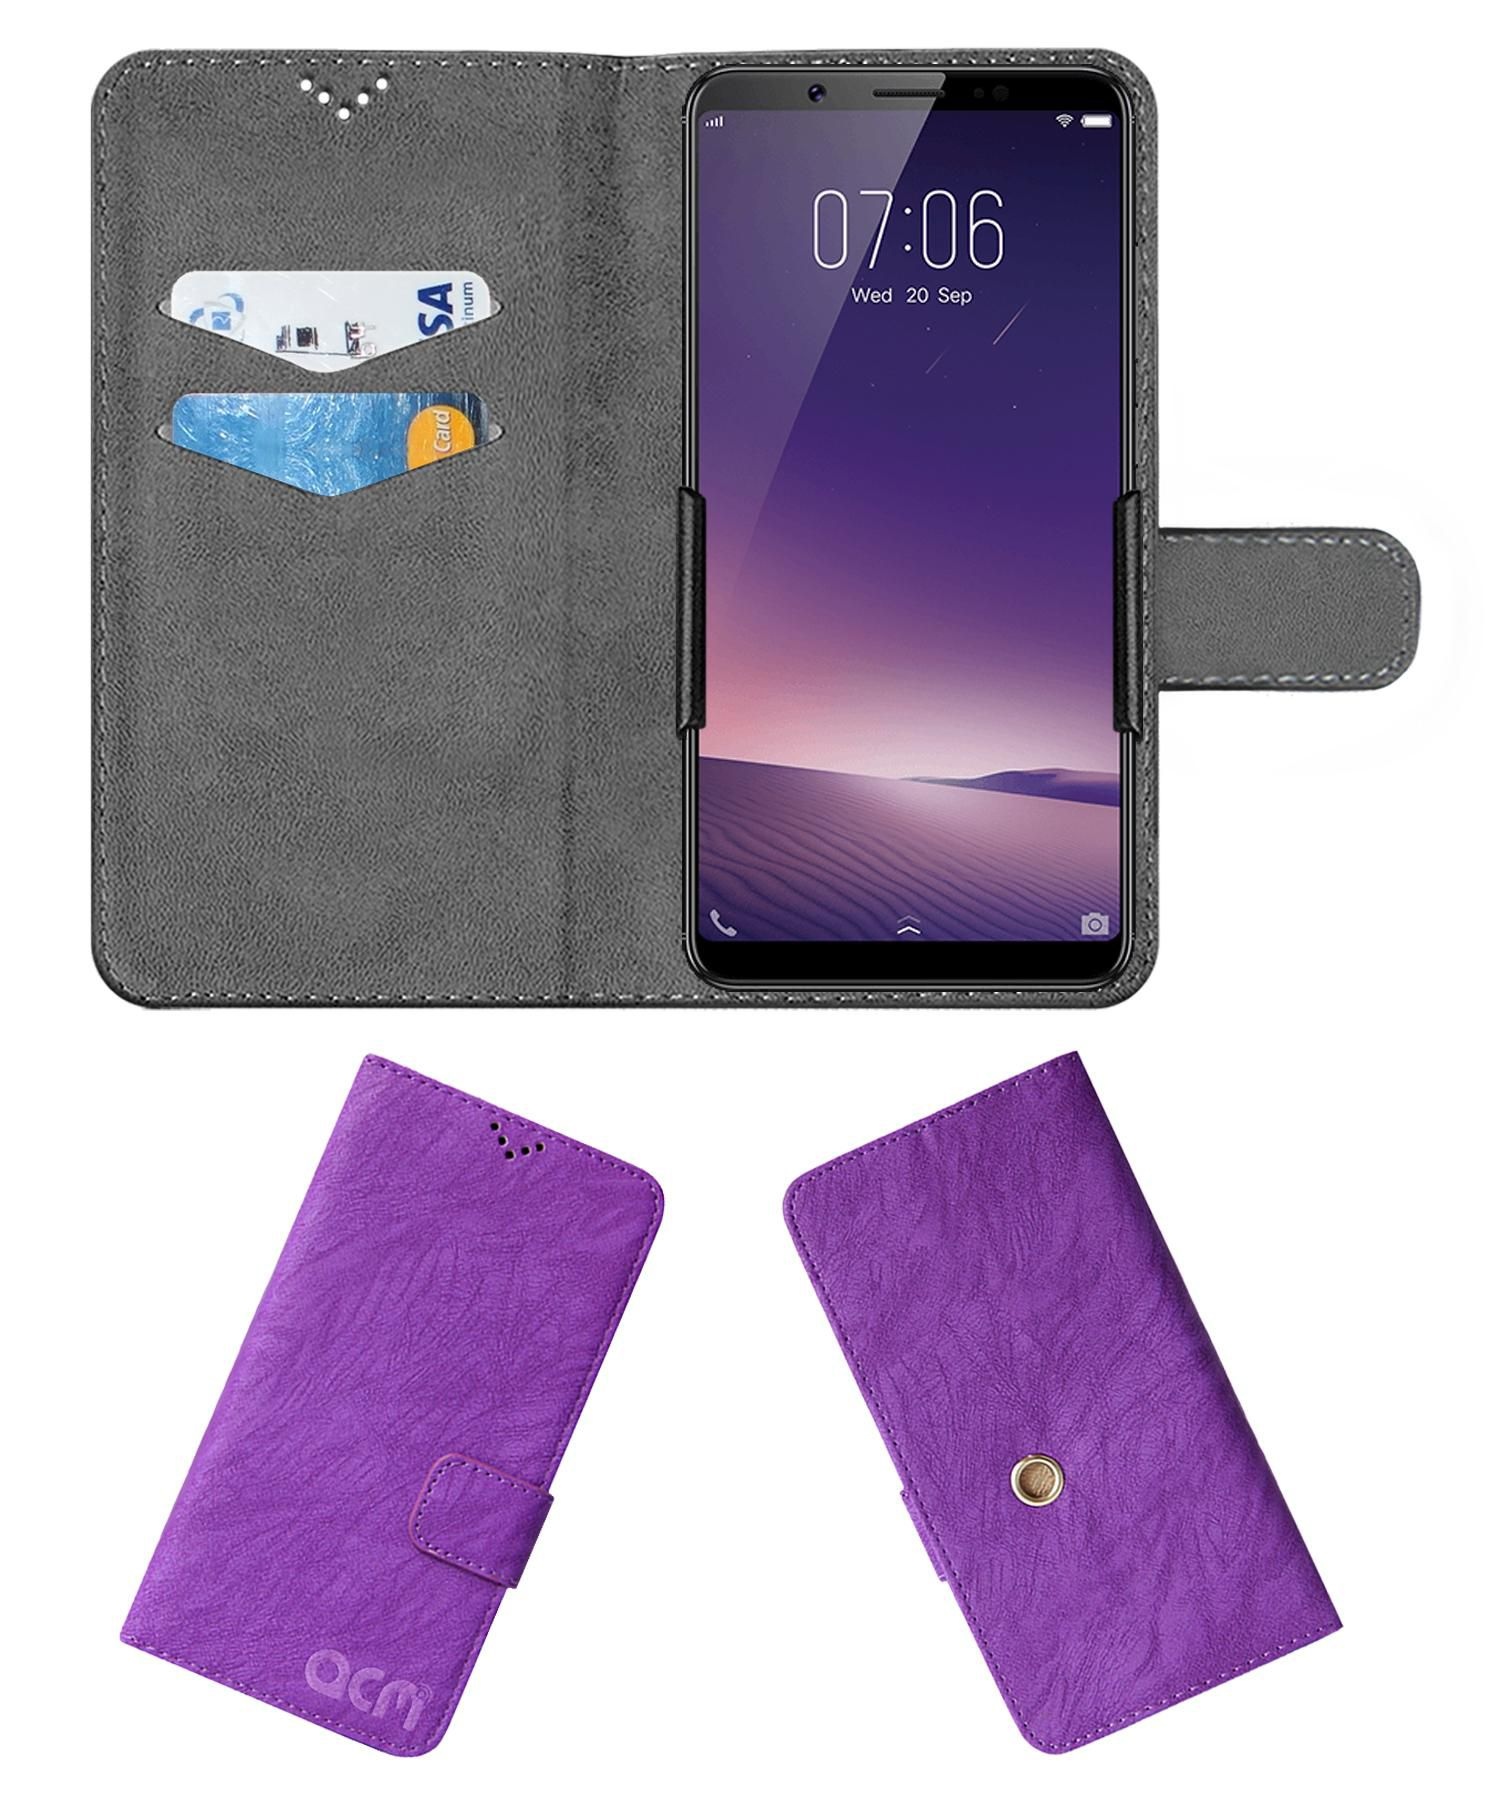 vivo V7 plus Flip Cover by ACM - Purple Clip holder to hold your mobile securely